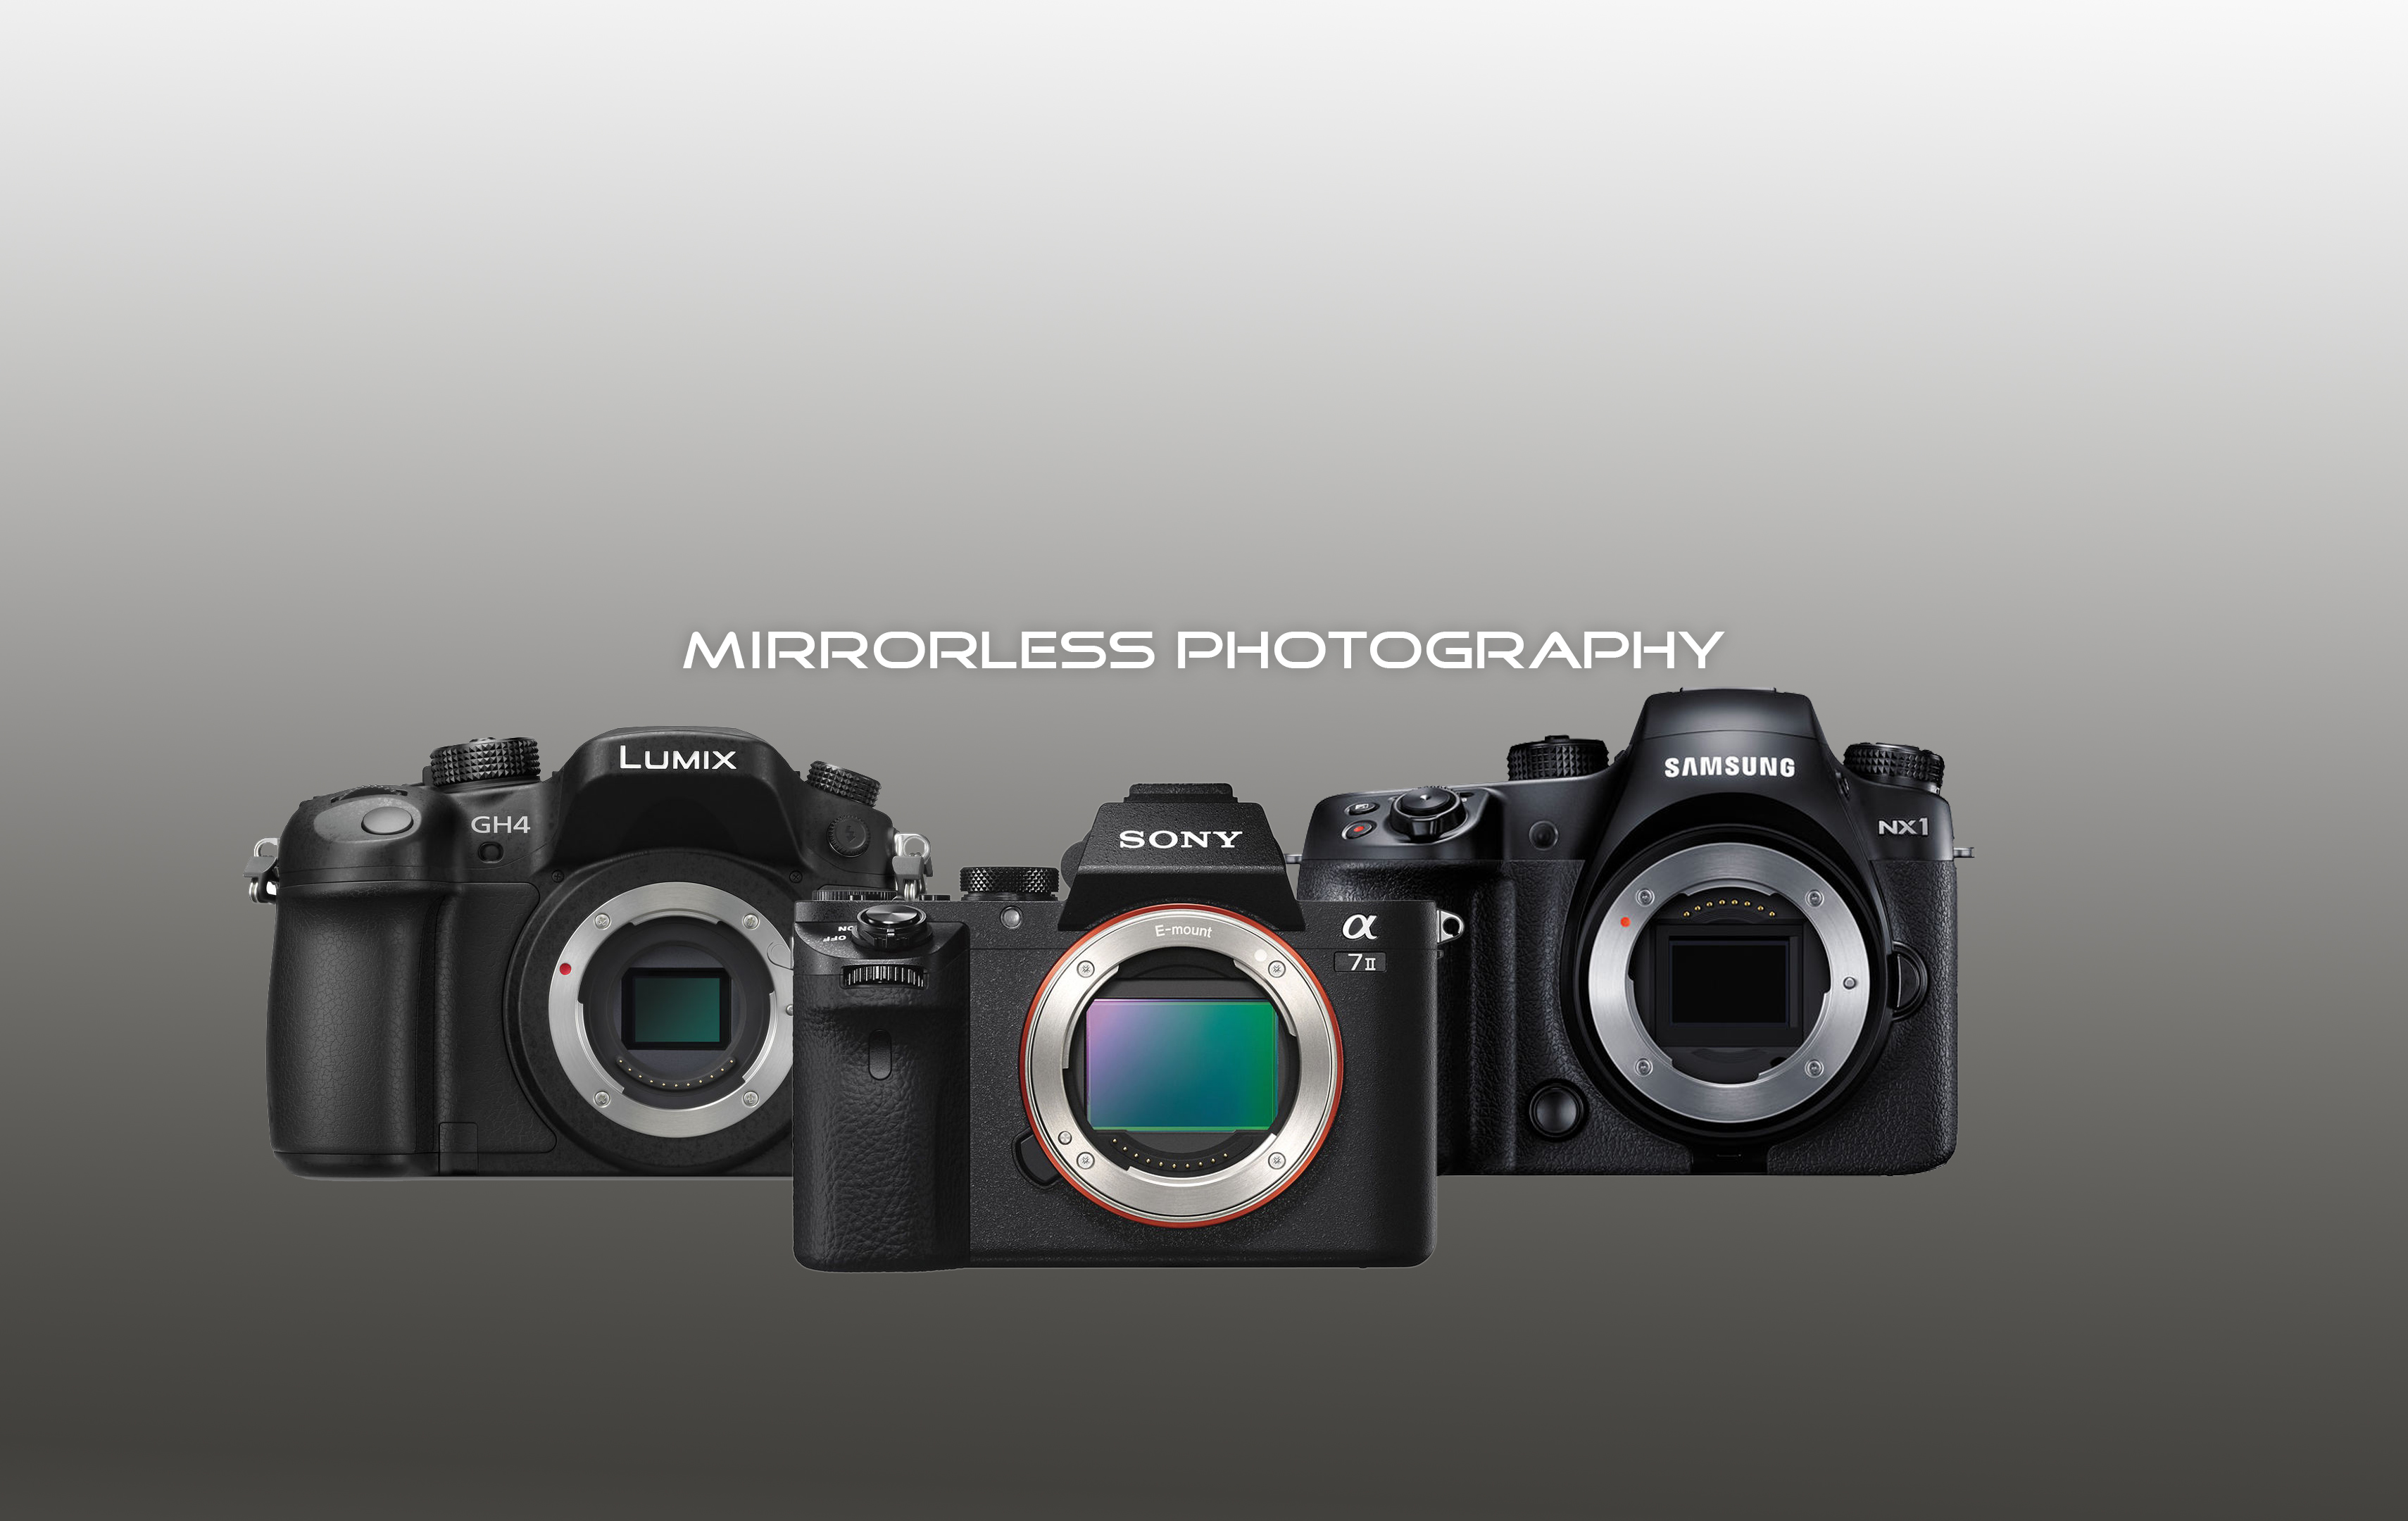 Mirrorless Photography Facebook Group started!